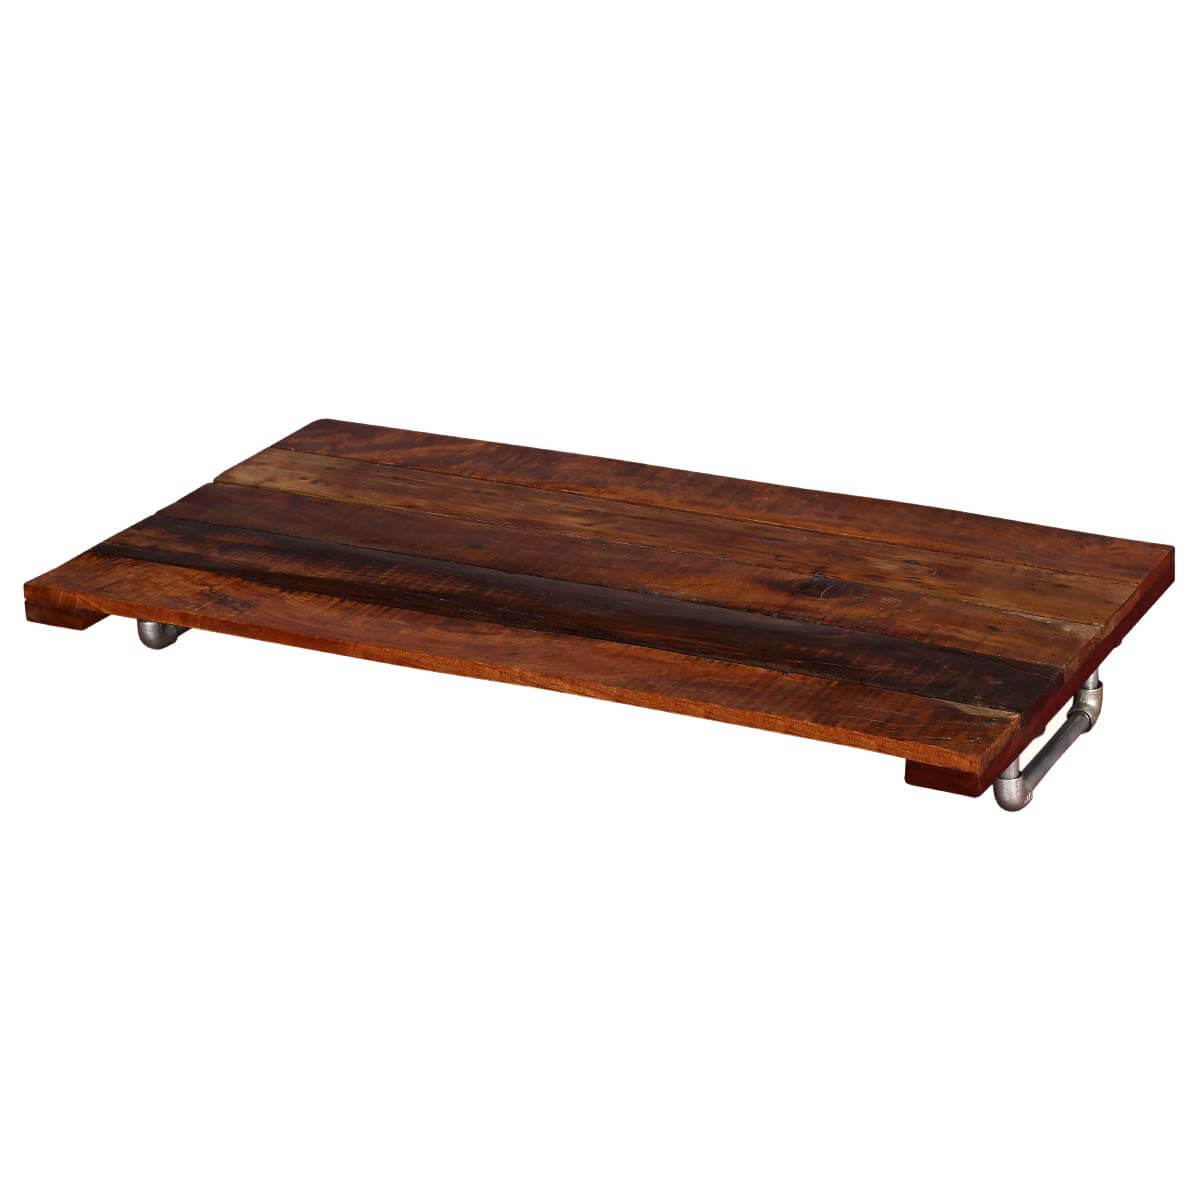 Japanese Sushi Hardwood Low Sitting Accent Coffee Table